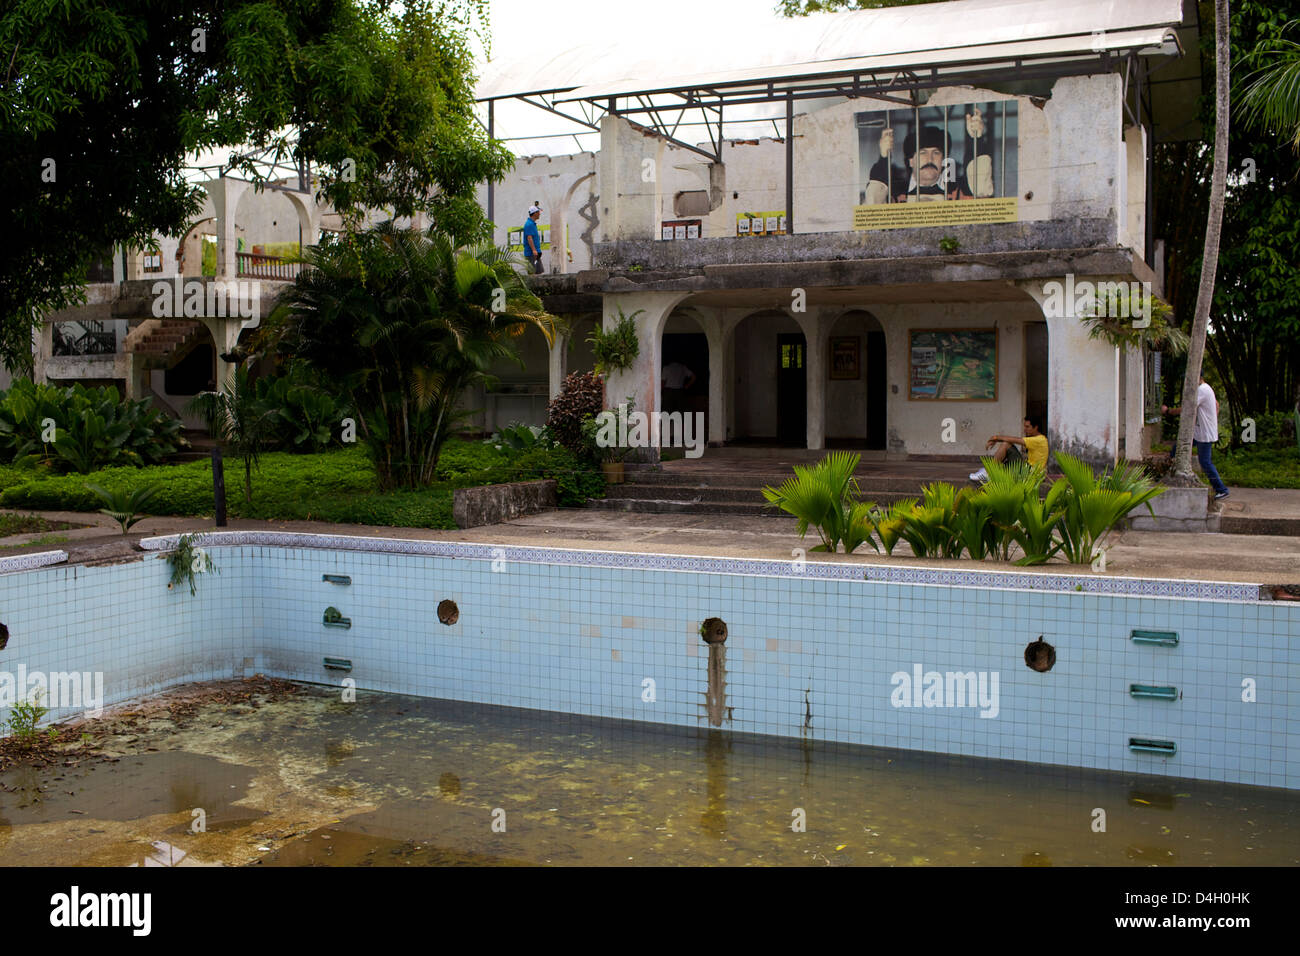 Visting the Pablo Escobar house at the Ranch Napoles, Medellin, Colombia, South America Stock Photo